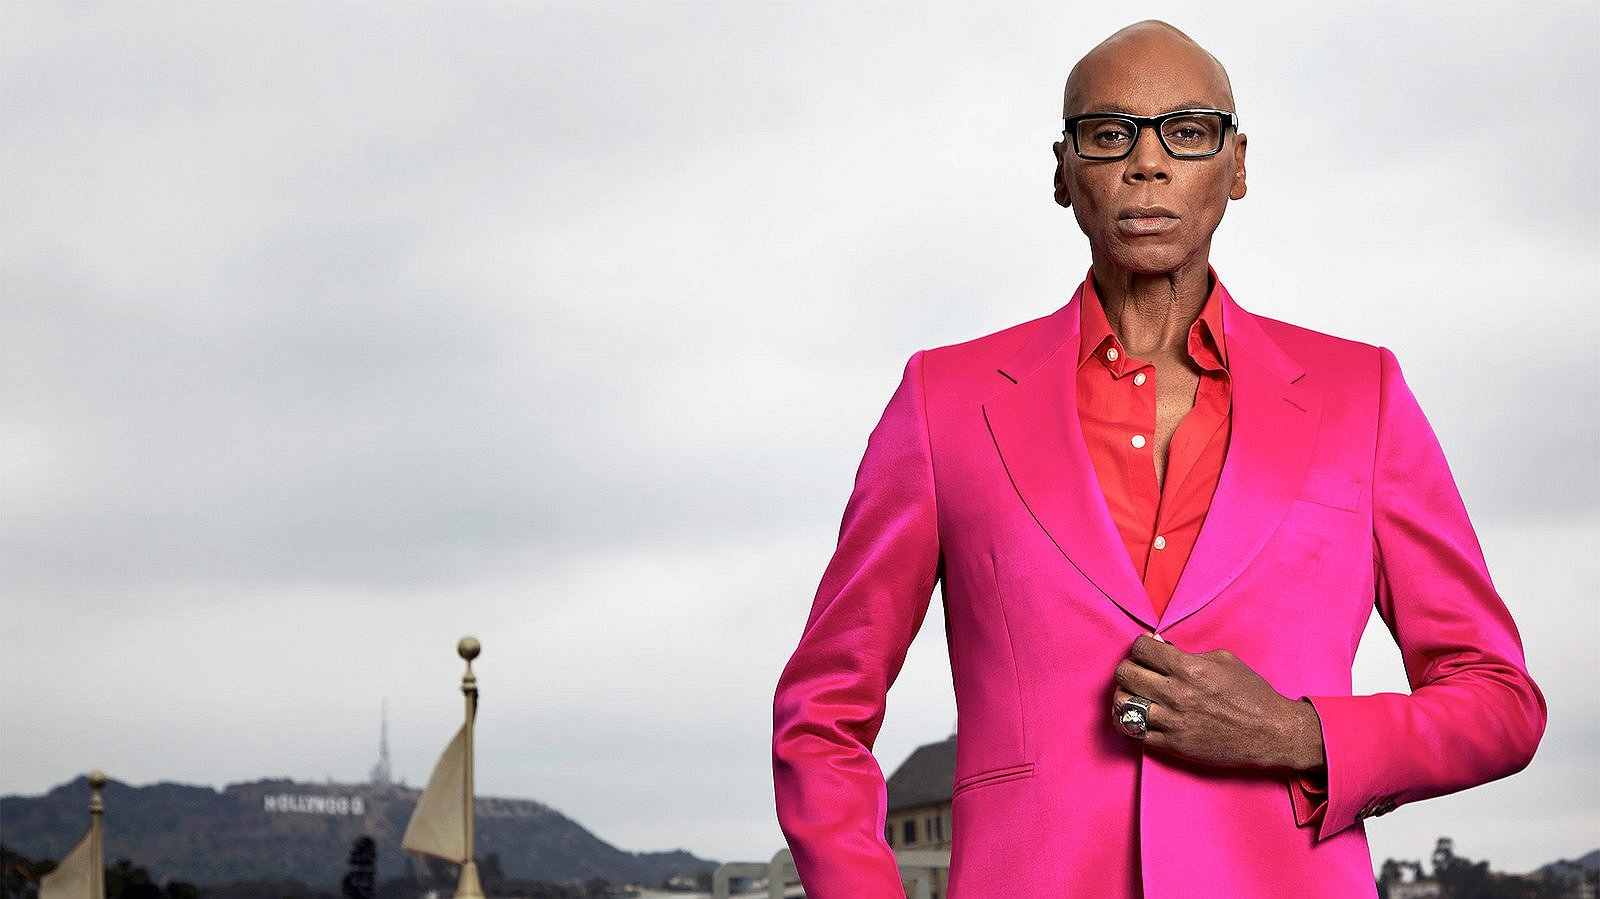 RuPaul speelt hoofdrol in rampenfilm 'Drag Queens on a Plane'